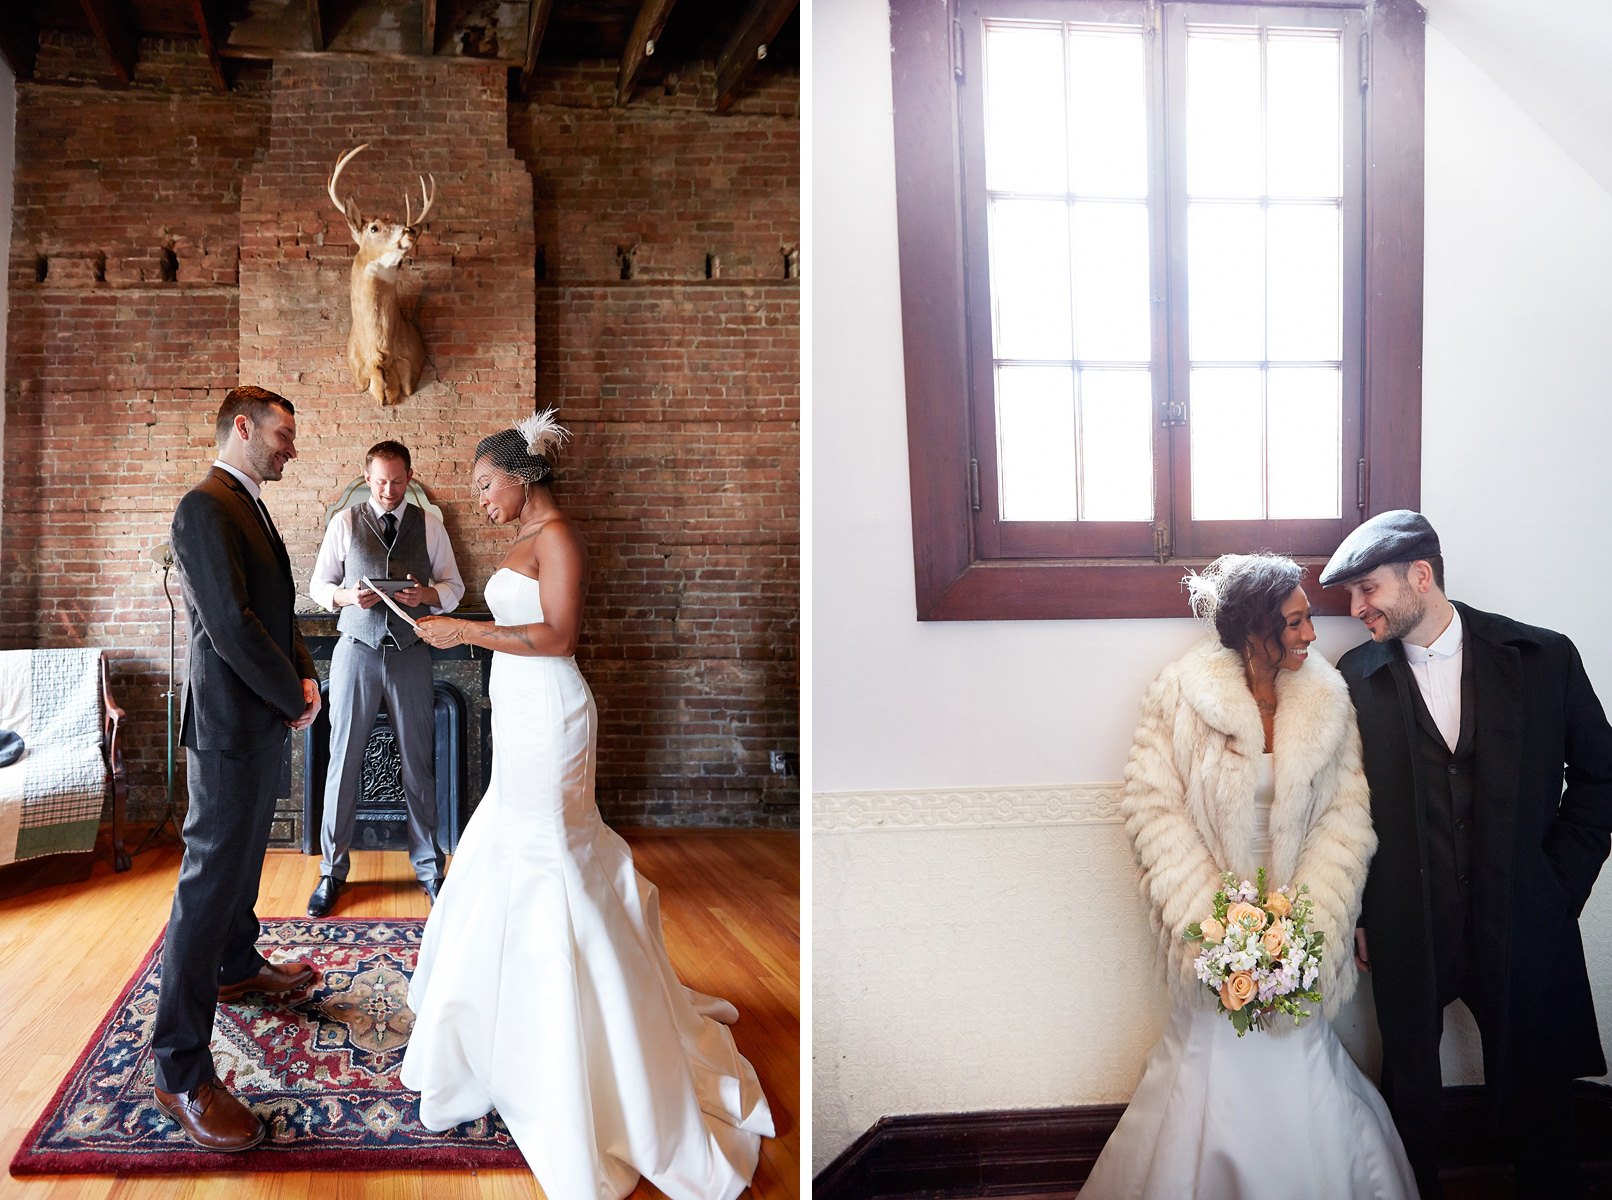 Sabrina declaring her love in the Top Hat suite. The happy couple in the hallway of The Milliner